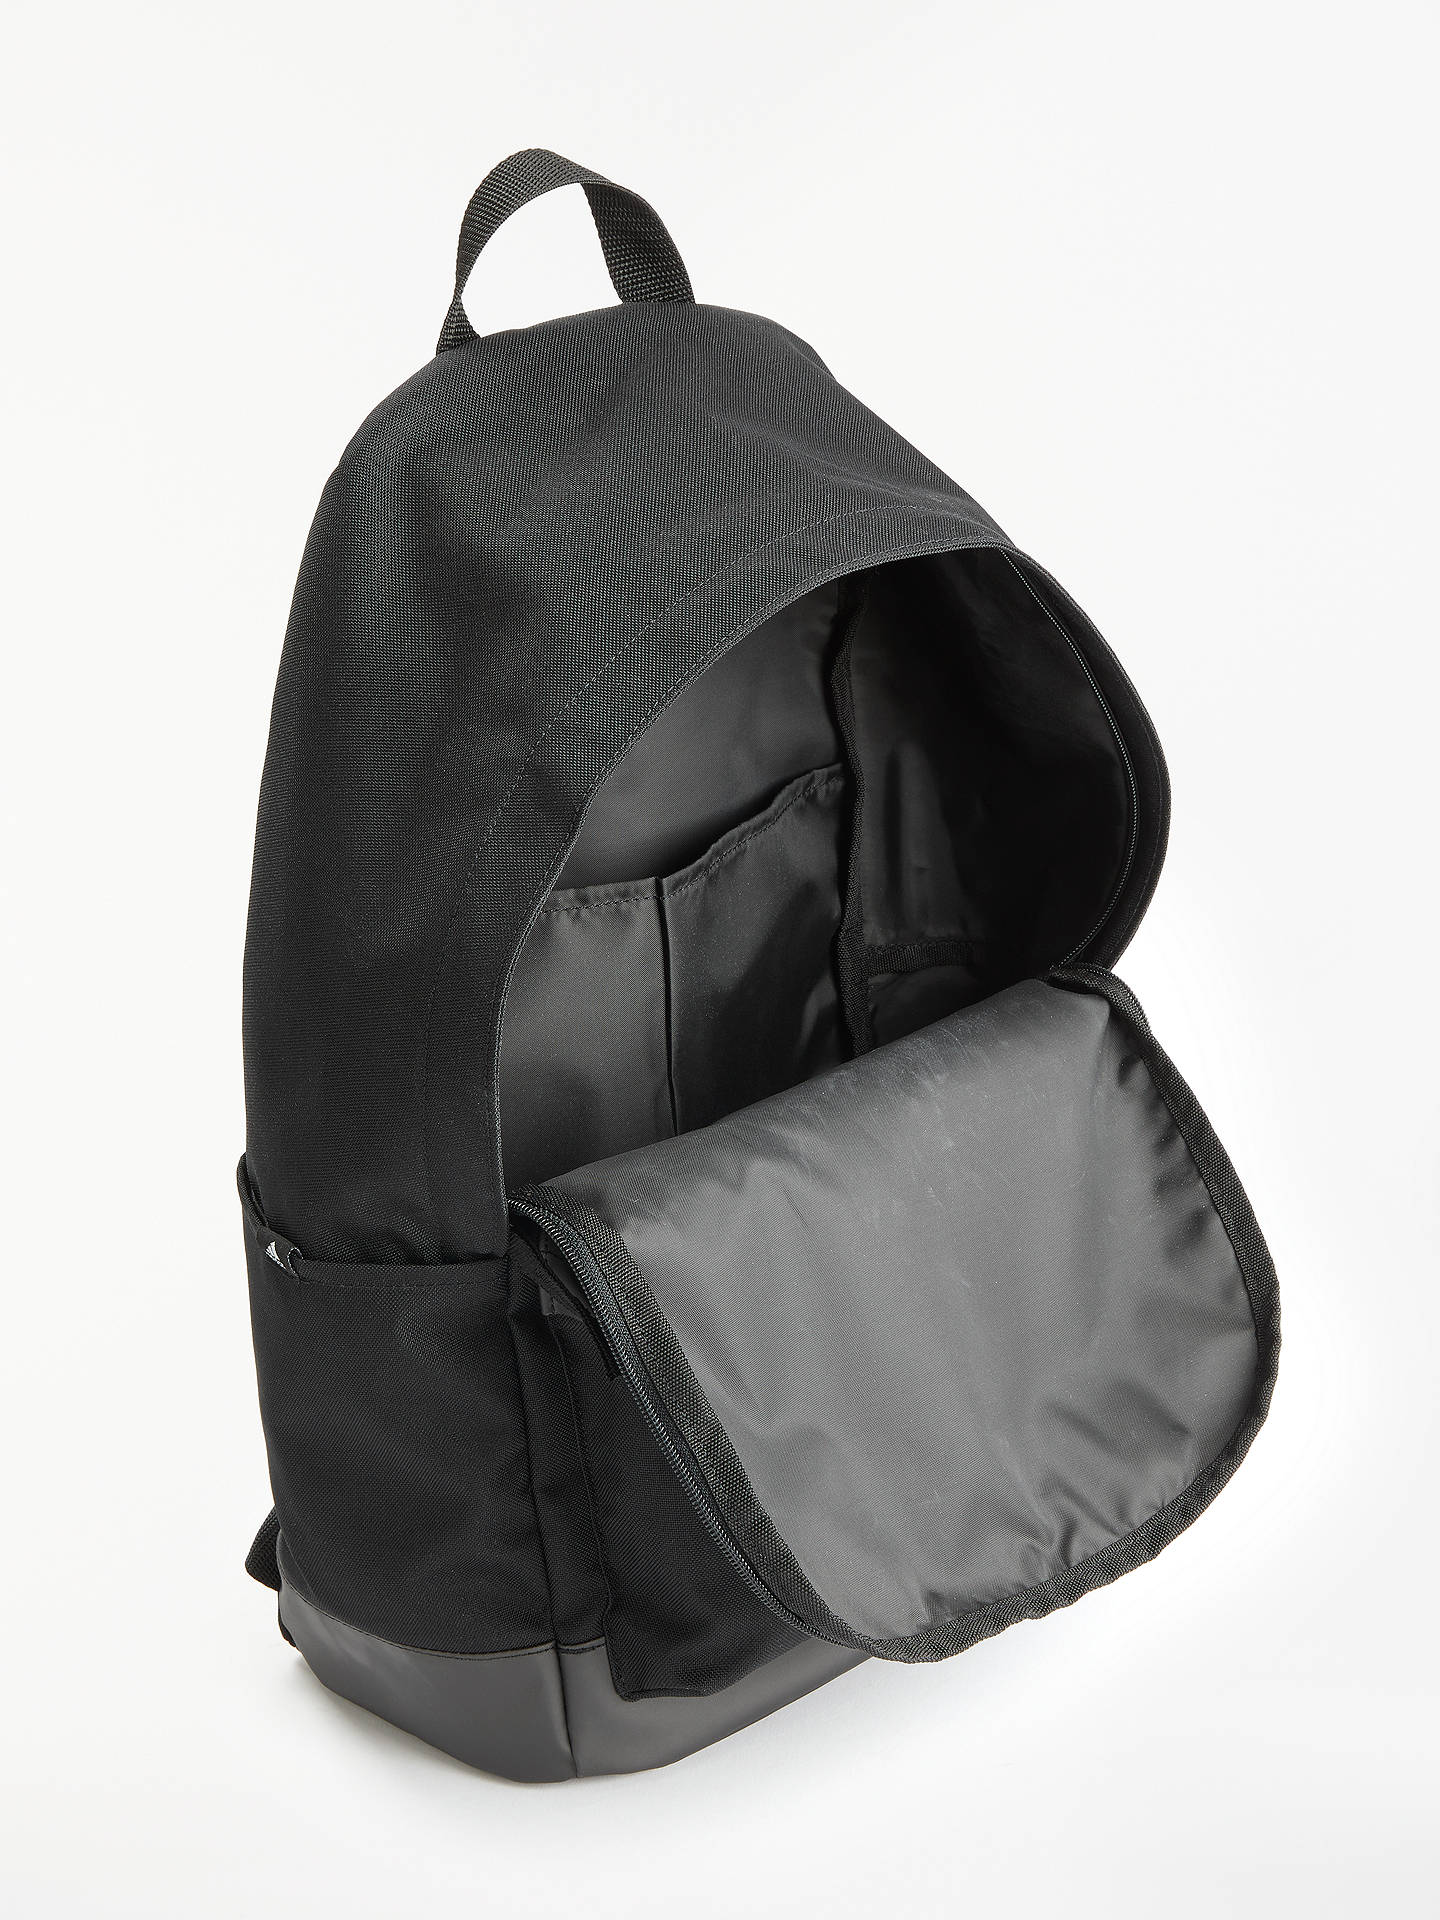 22a1a9be59 adidas Classic 3-Stripes Pocket Backpack at John Lewis   Partners